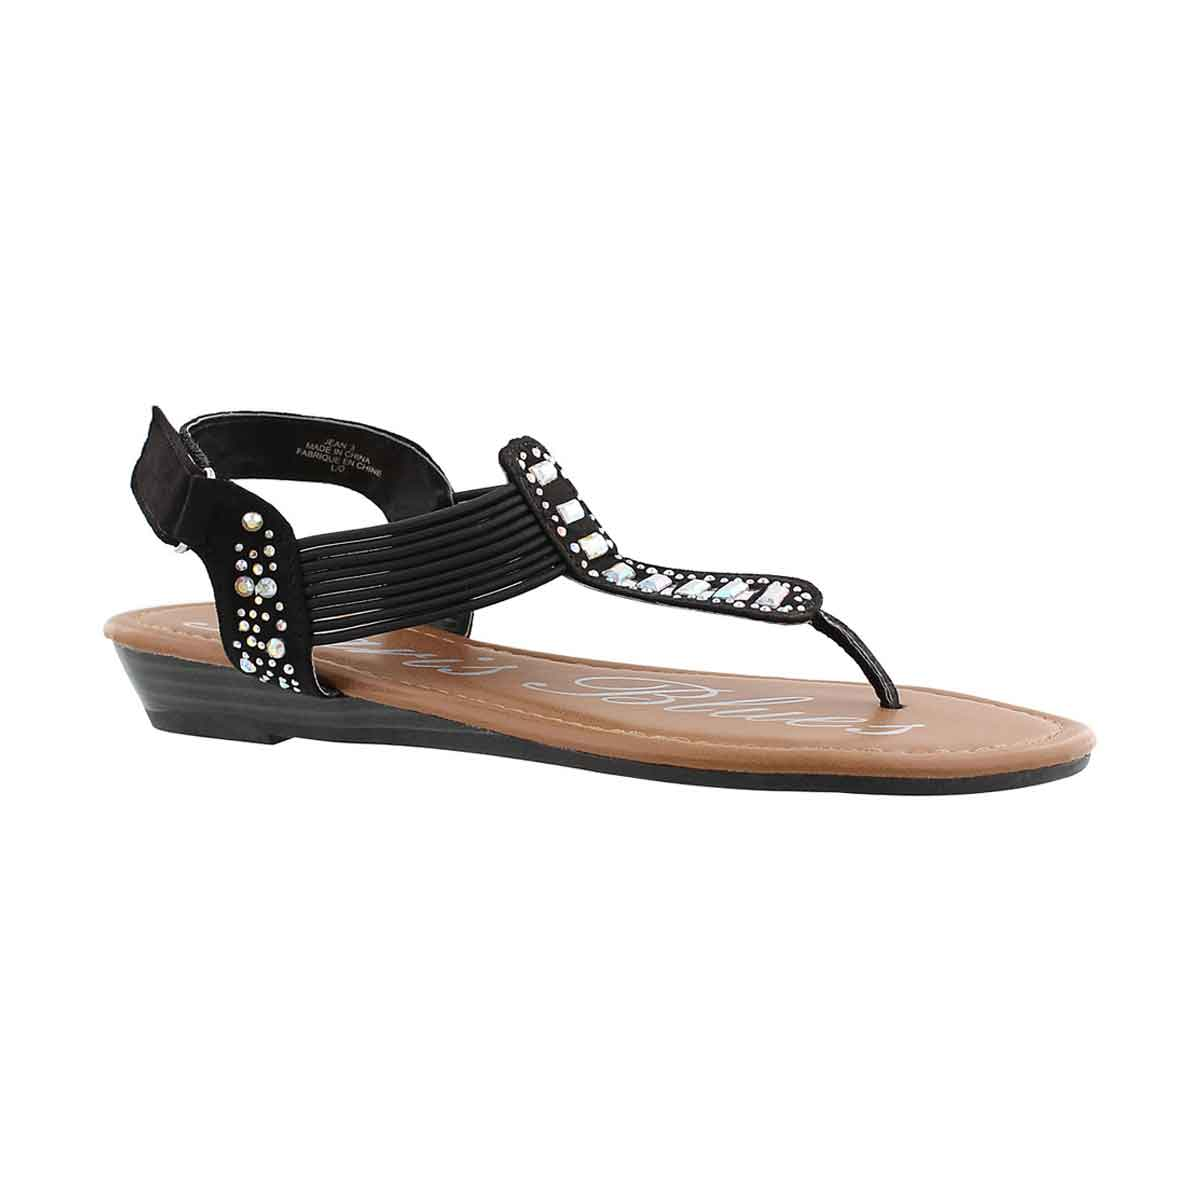 Girls' JEAN black t-strap sandals